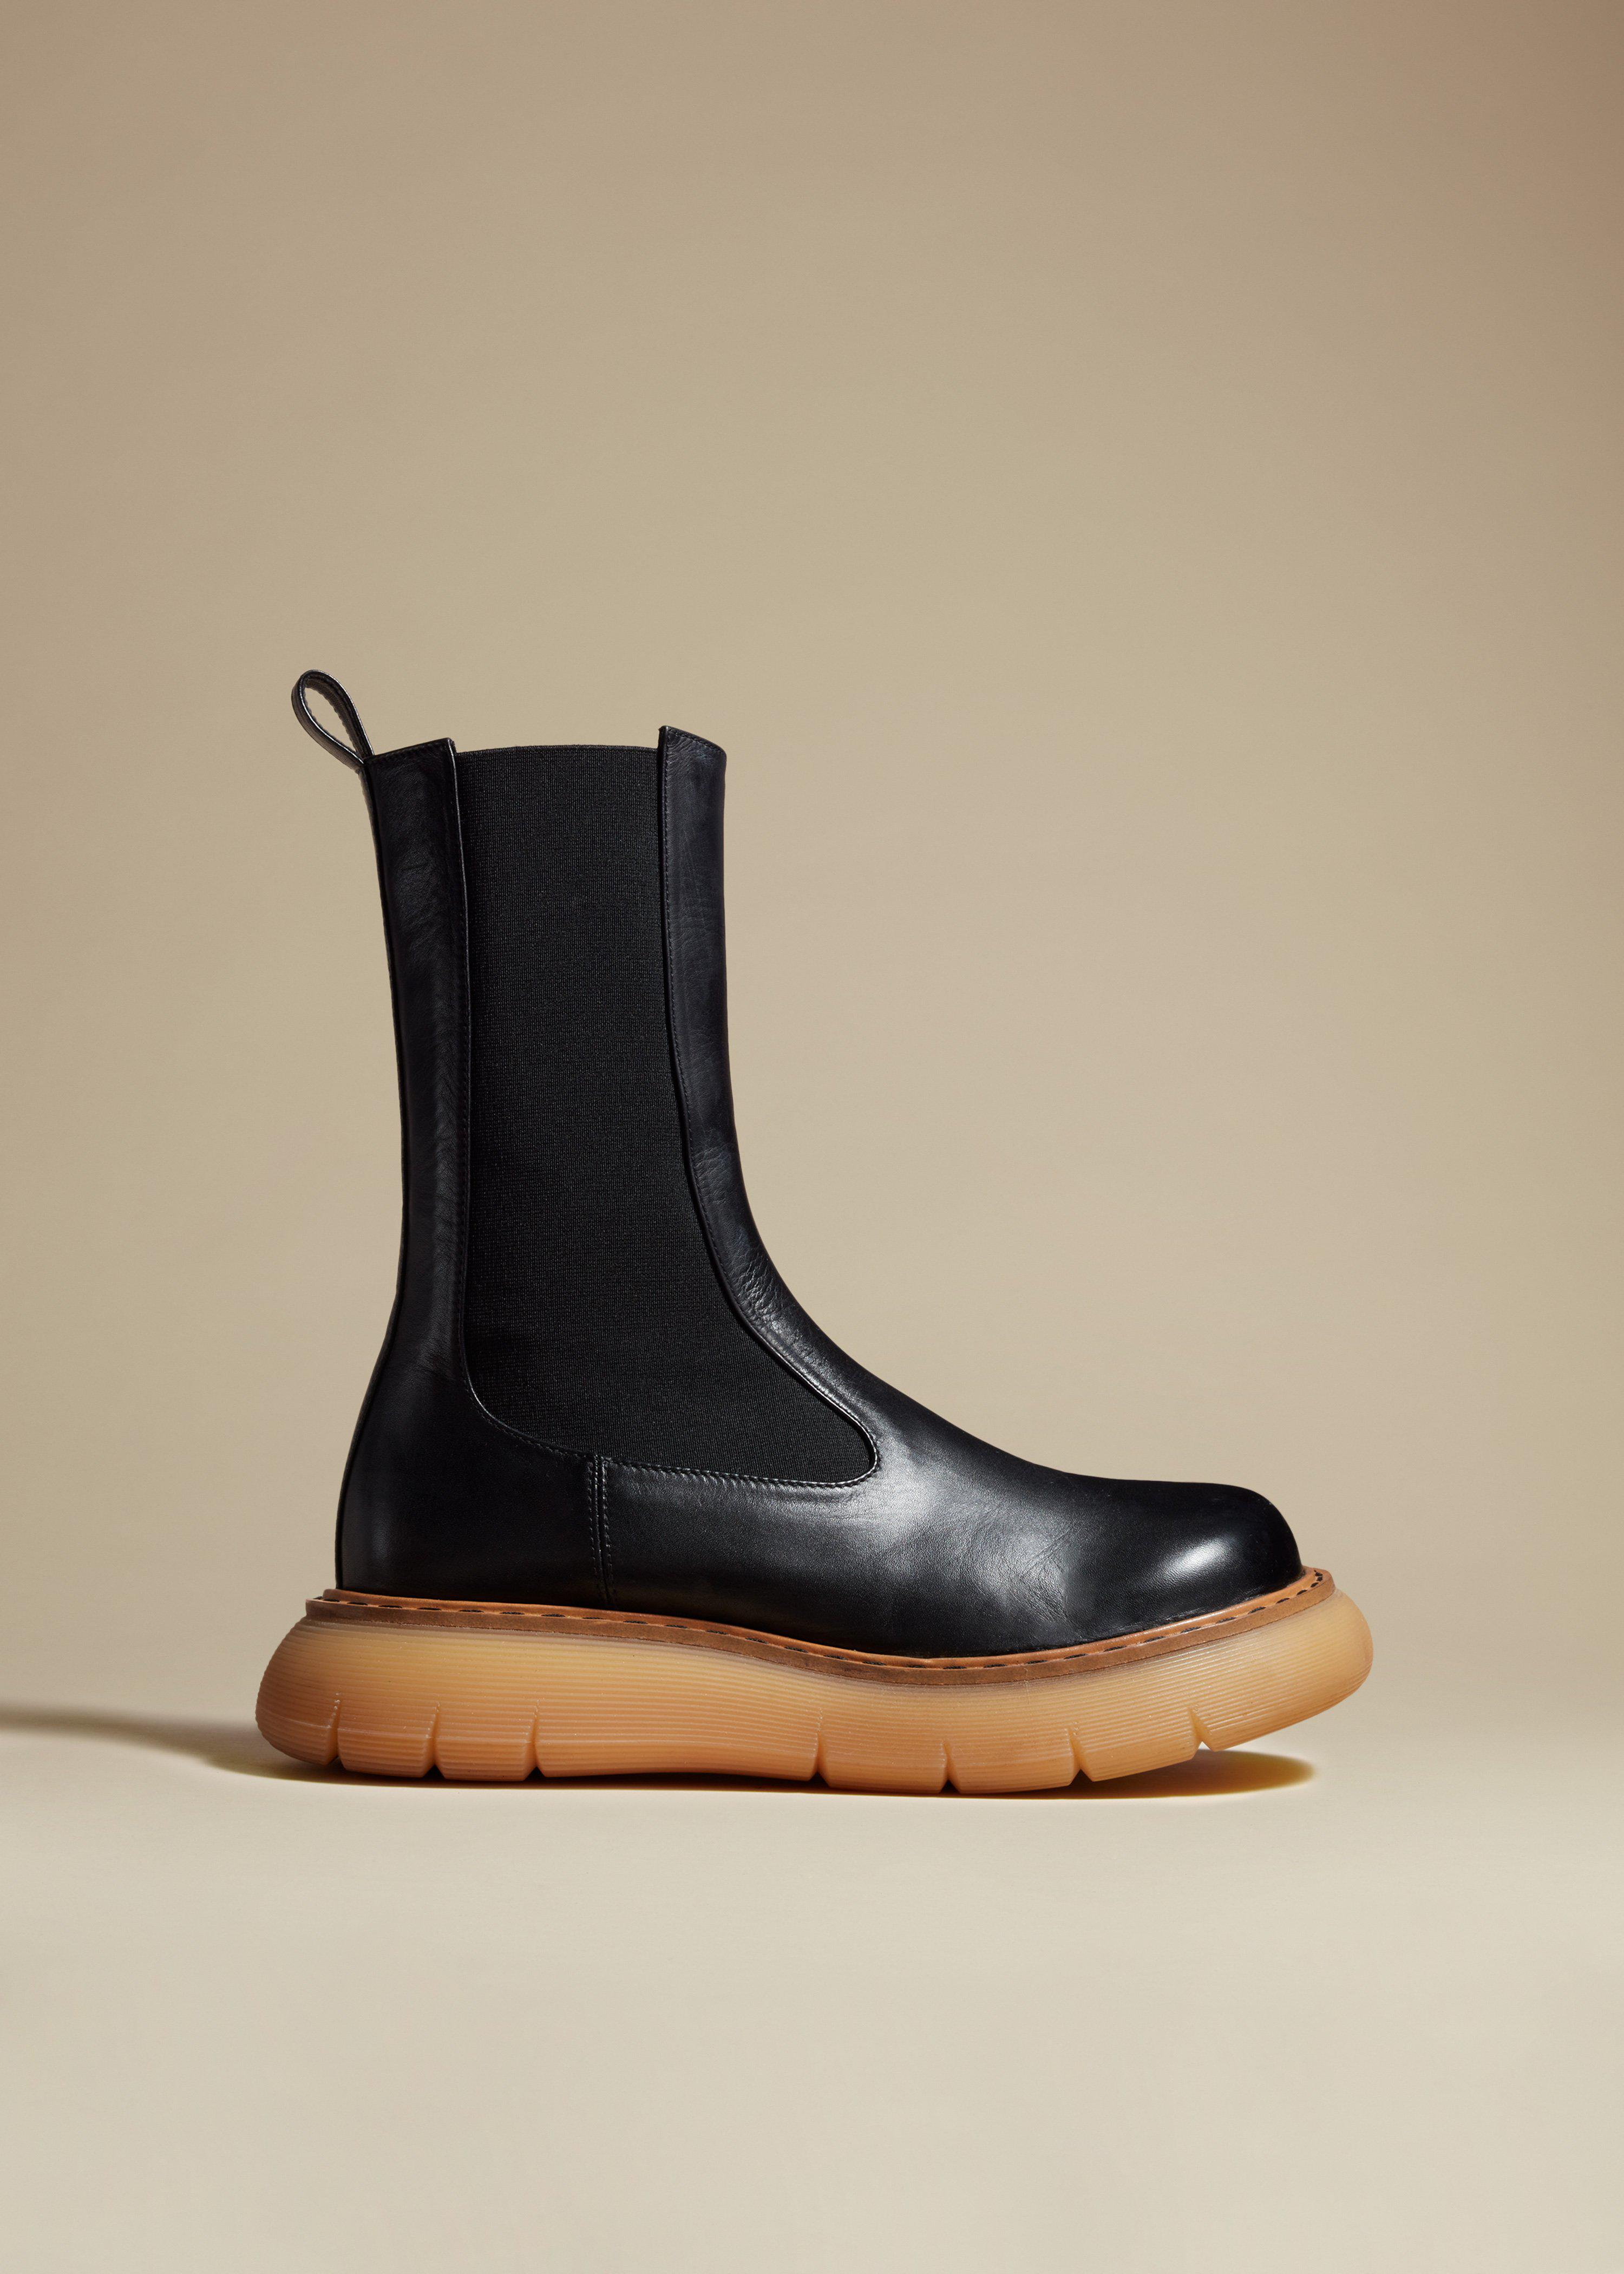 The Bleecker Boot in Black Leather